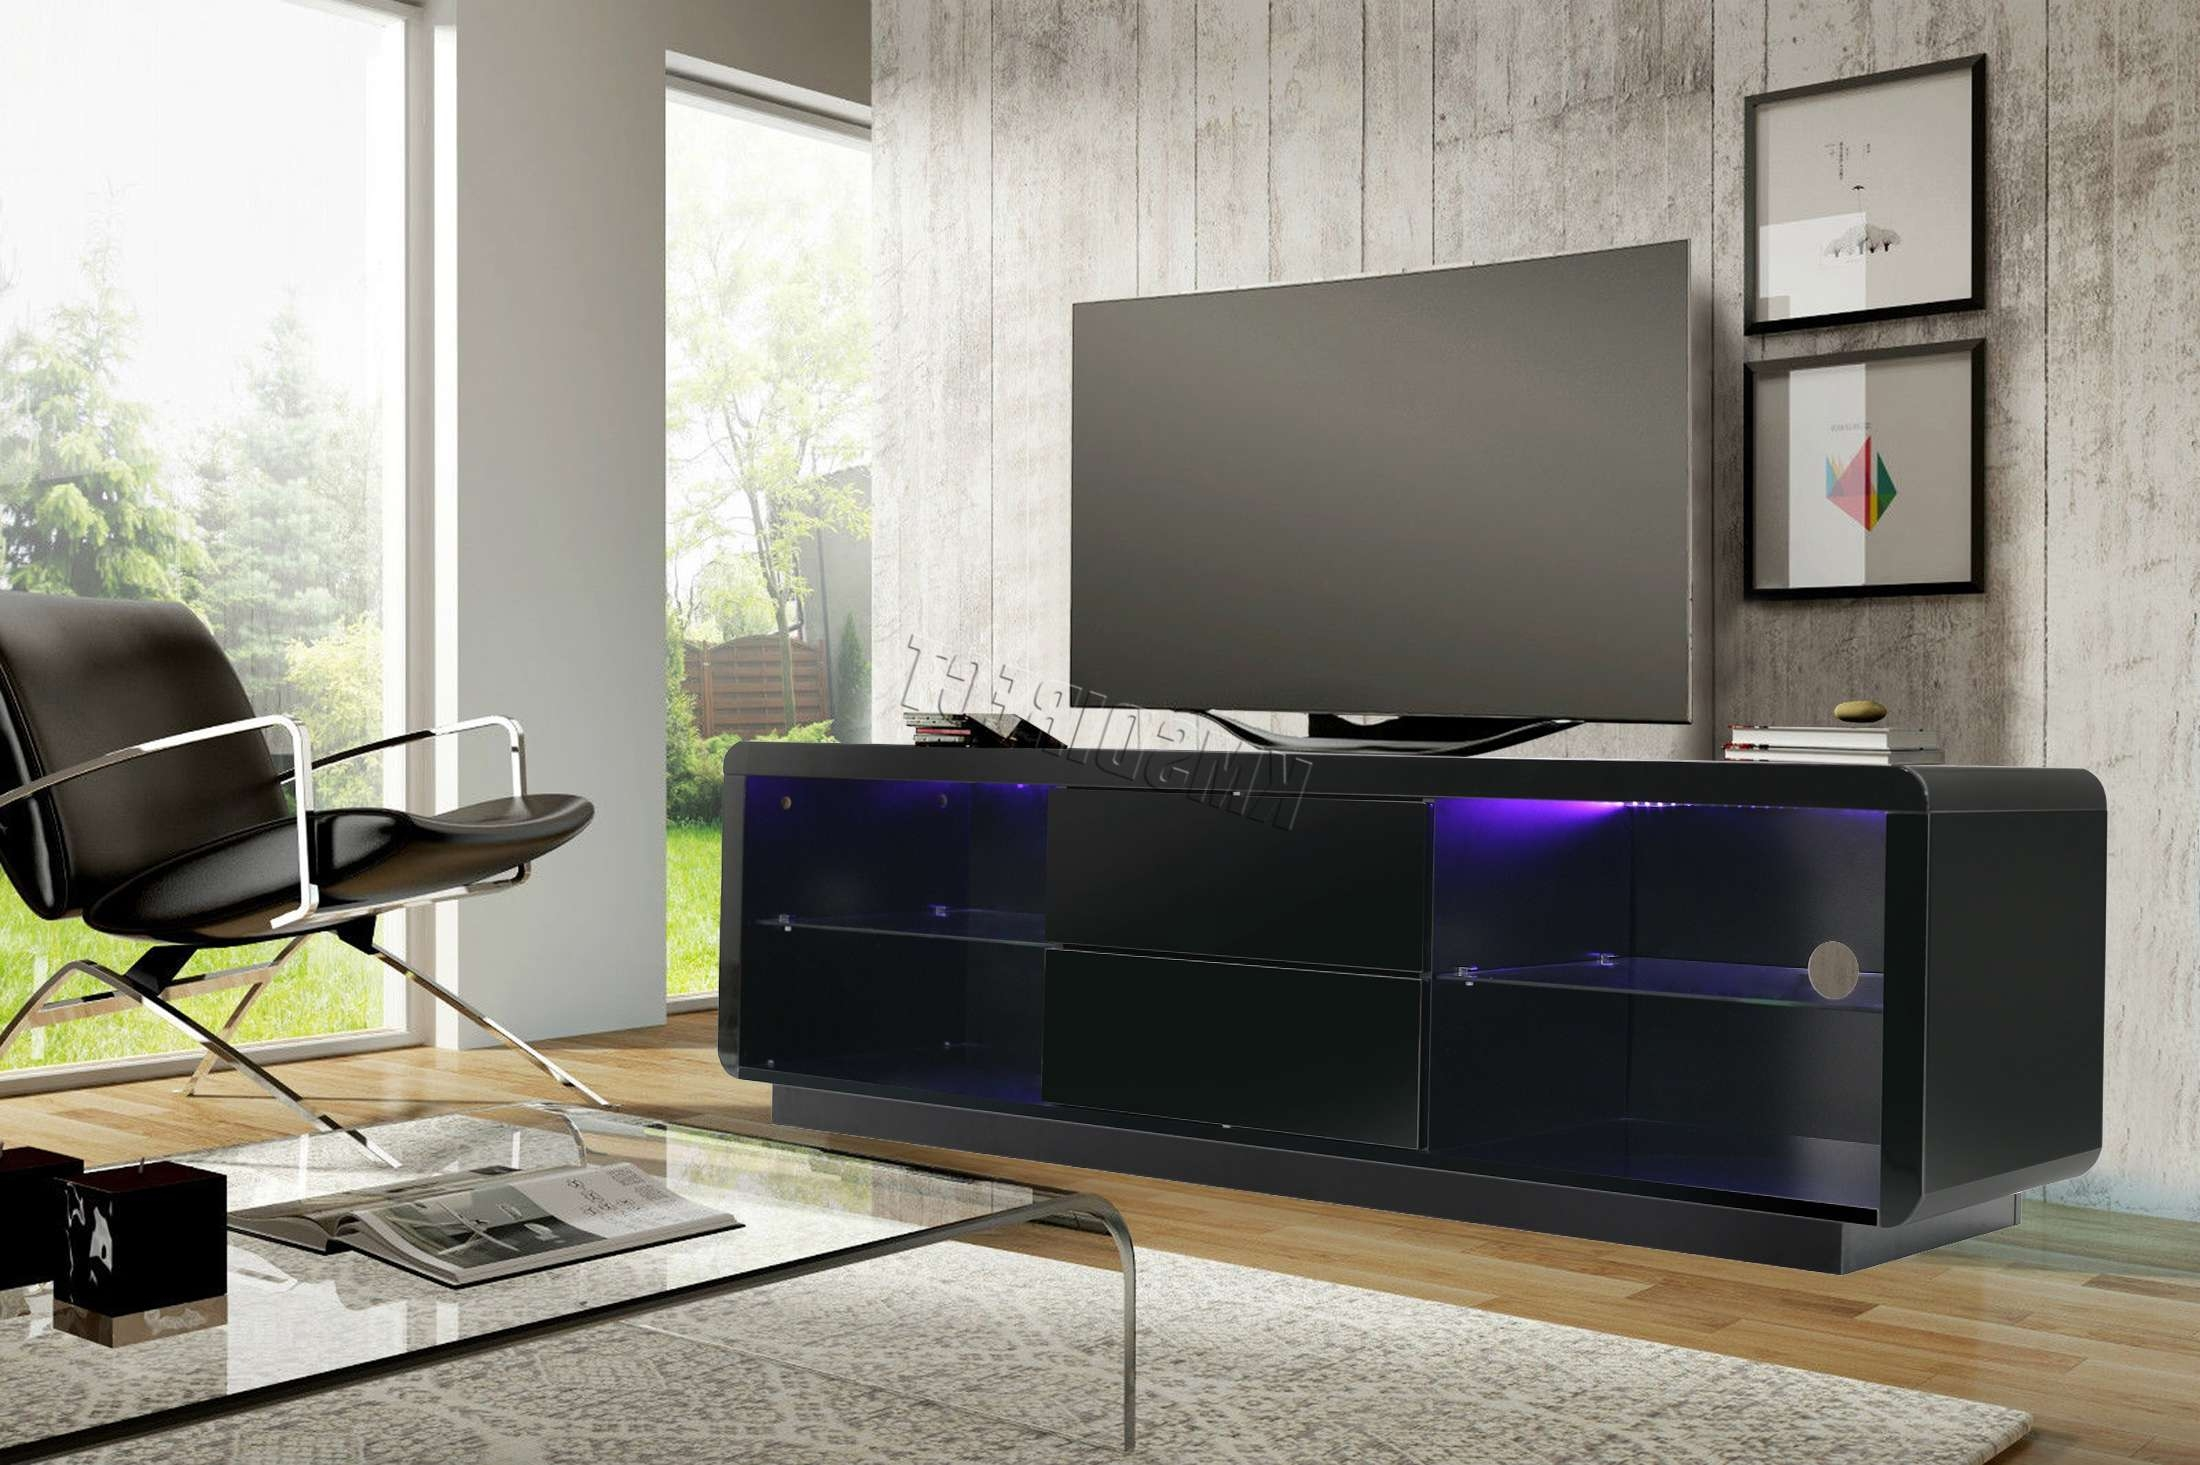 Foxhunter Modern High Gloss Matt Tv Cabinet Unit Stand Home Rgb Regarding Tv Stands With Led Lights (View 2 of 15)